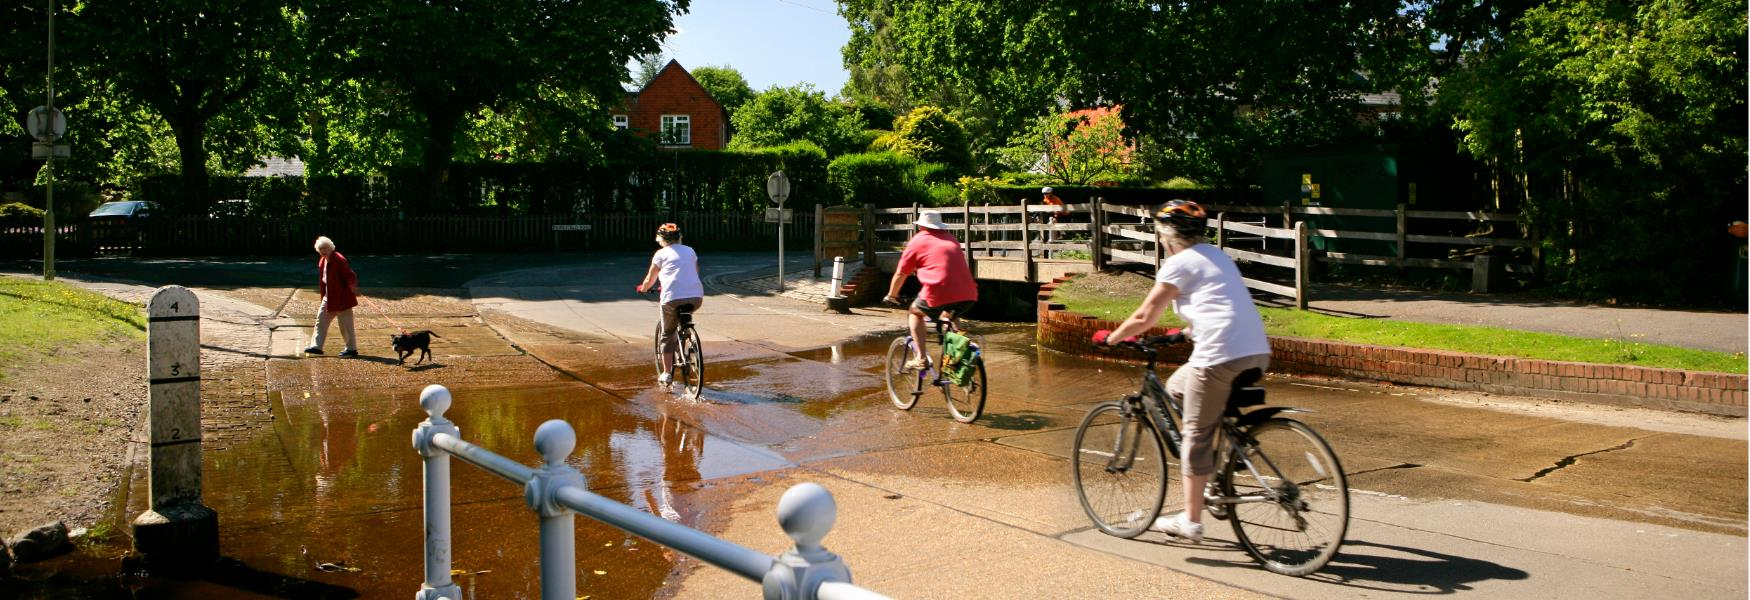 Cycling through ford in Brockenhurst in the New Forest